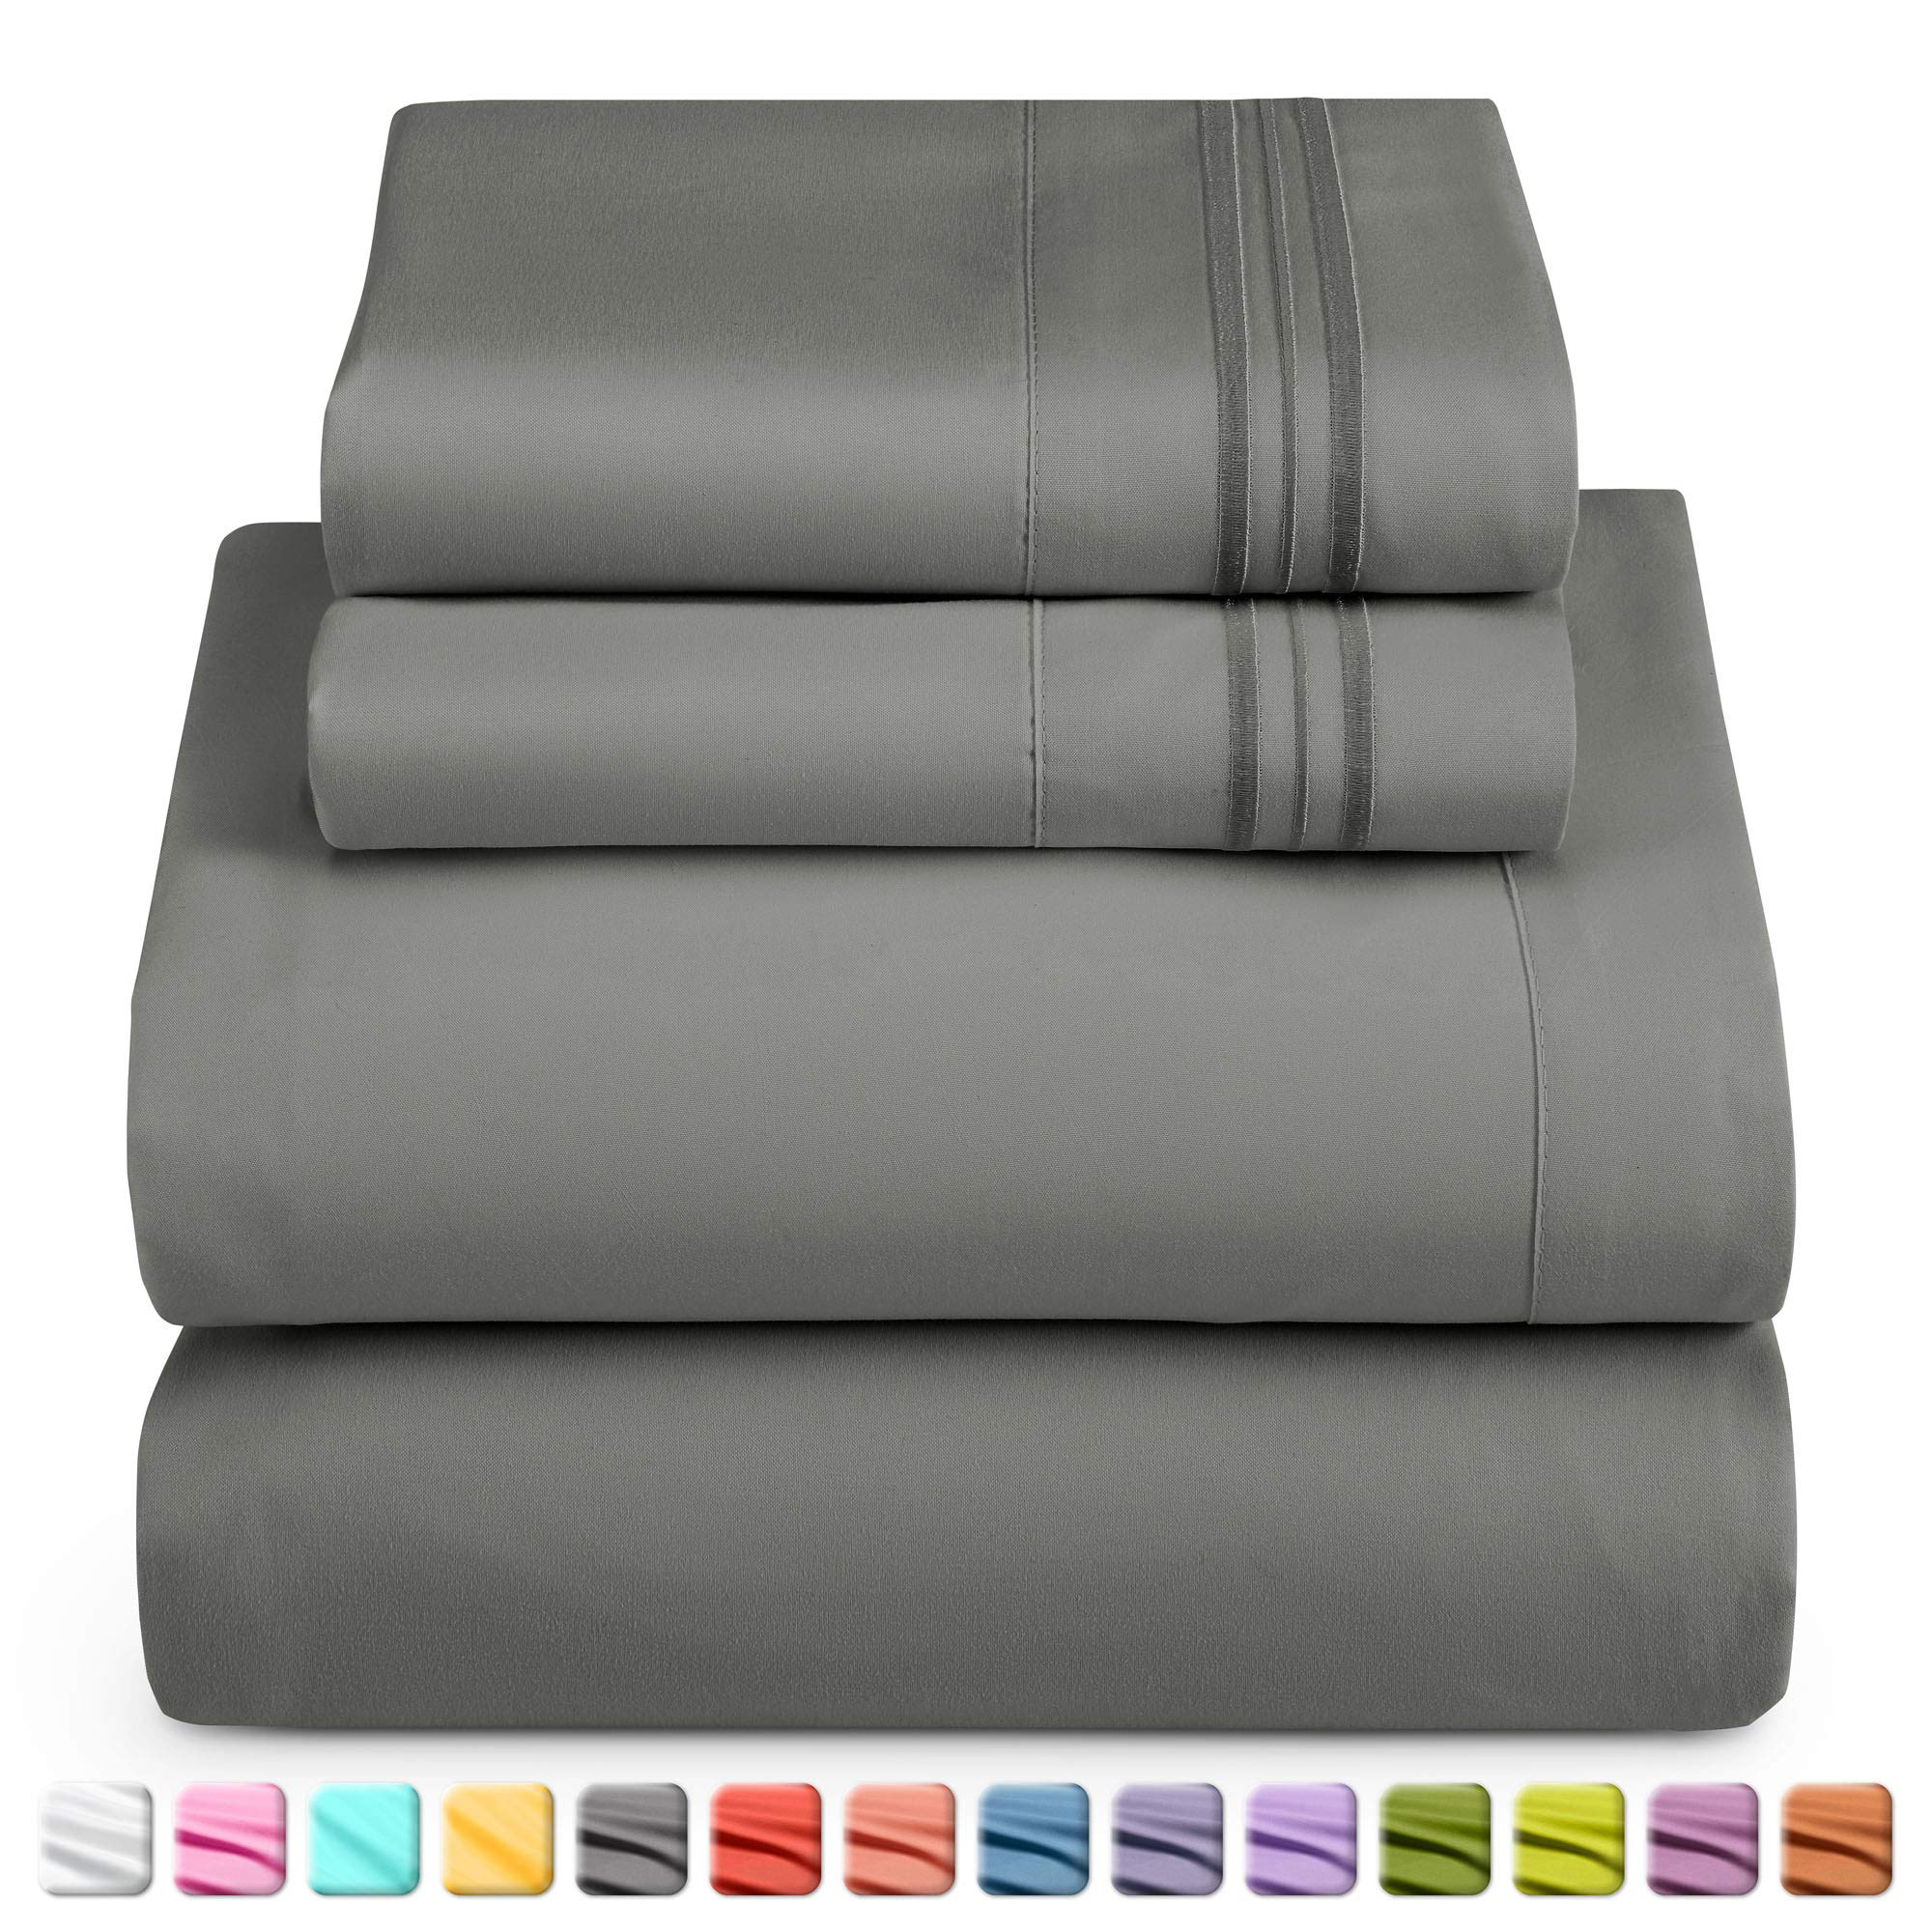 Nestl Luxury Queen Sheet Set - 4 Piece Extra Soft 1800 Microfiber-Deep Pocket Bed Sheets with Fitted Sheet, Flat Sheet, 2 Pillow Cases-Breathable Hotel Grade Comfort and Softness - Charcoal Stone Gray